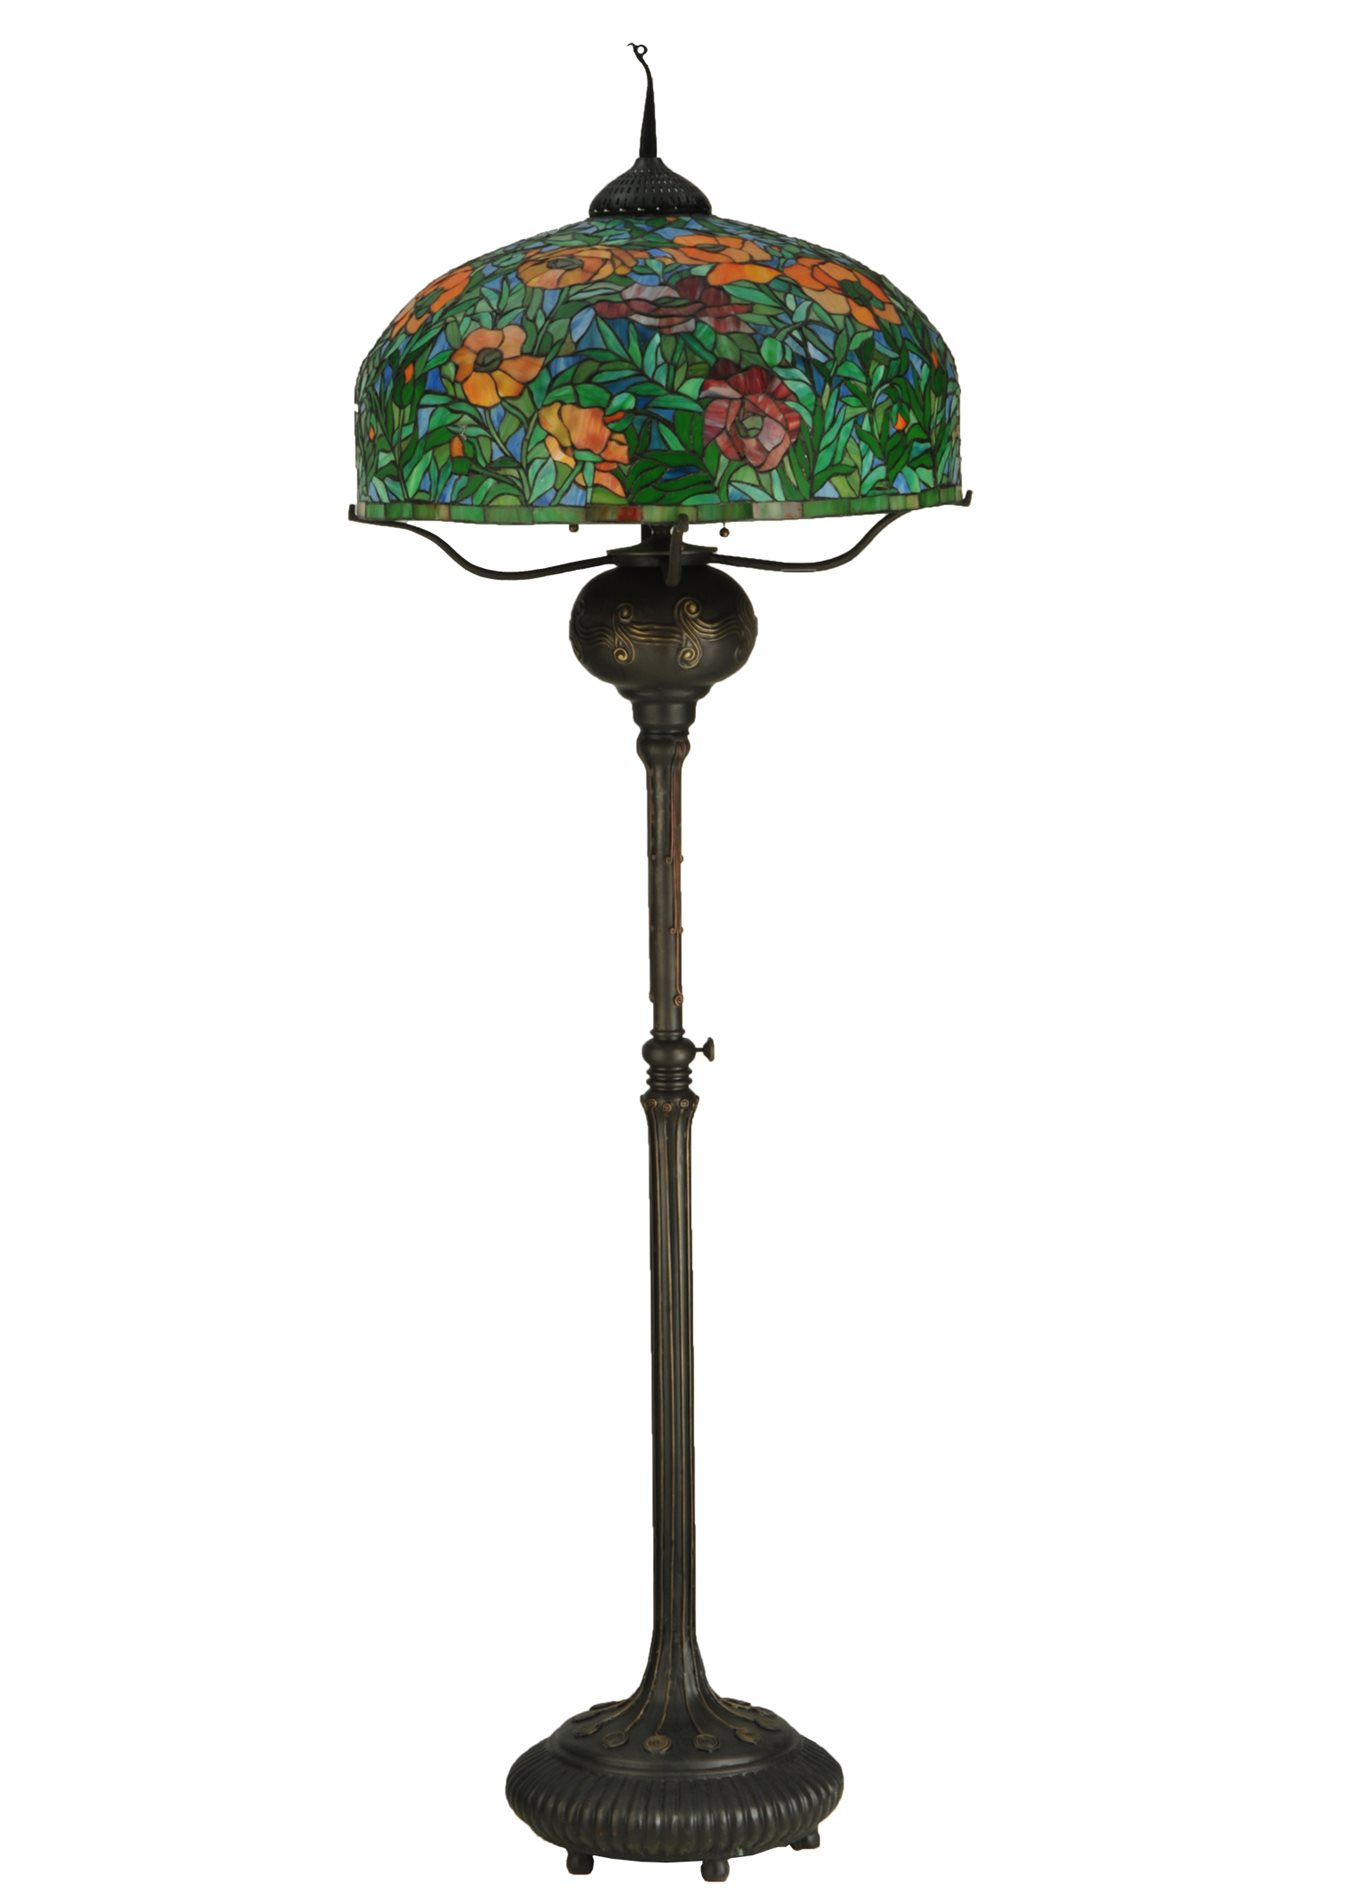 Meyda Tiffany 27544 Museum Collection Poppy Tiffany Floor